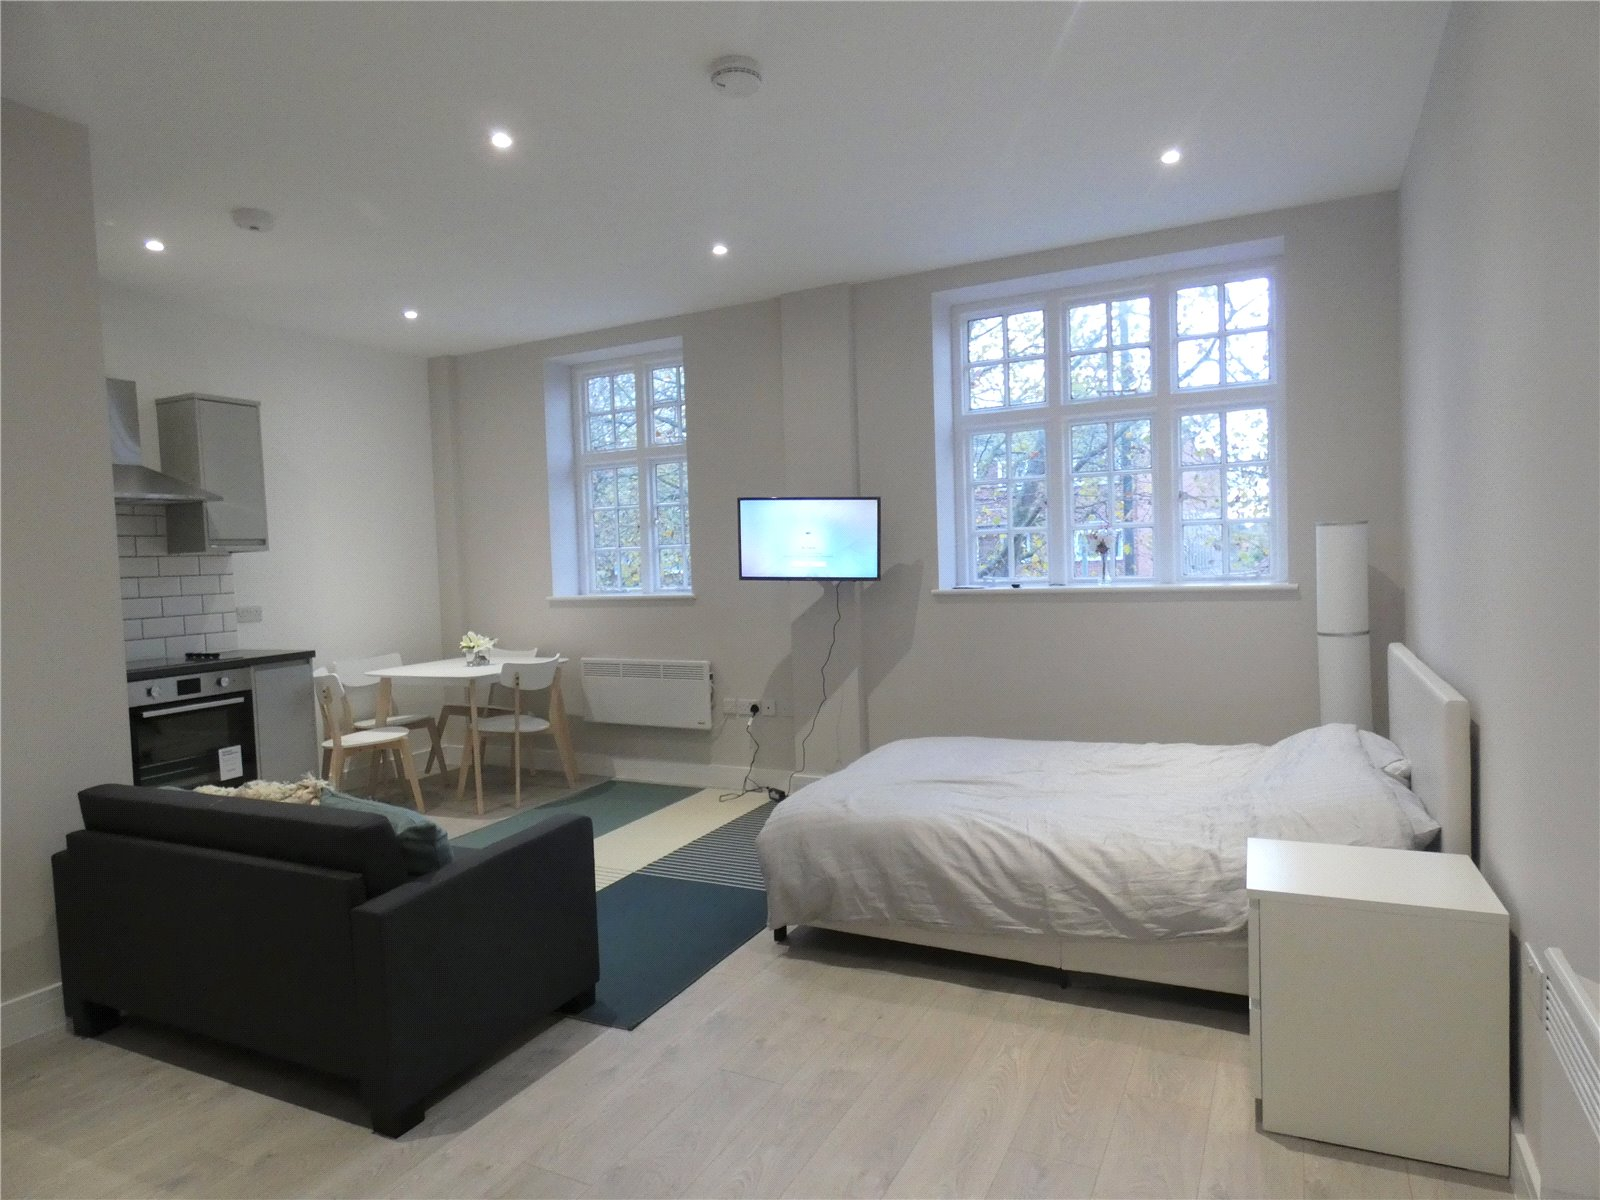 Apartment to rent in Whetstone, N20 9HW  - Property Image 1